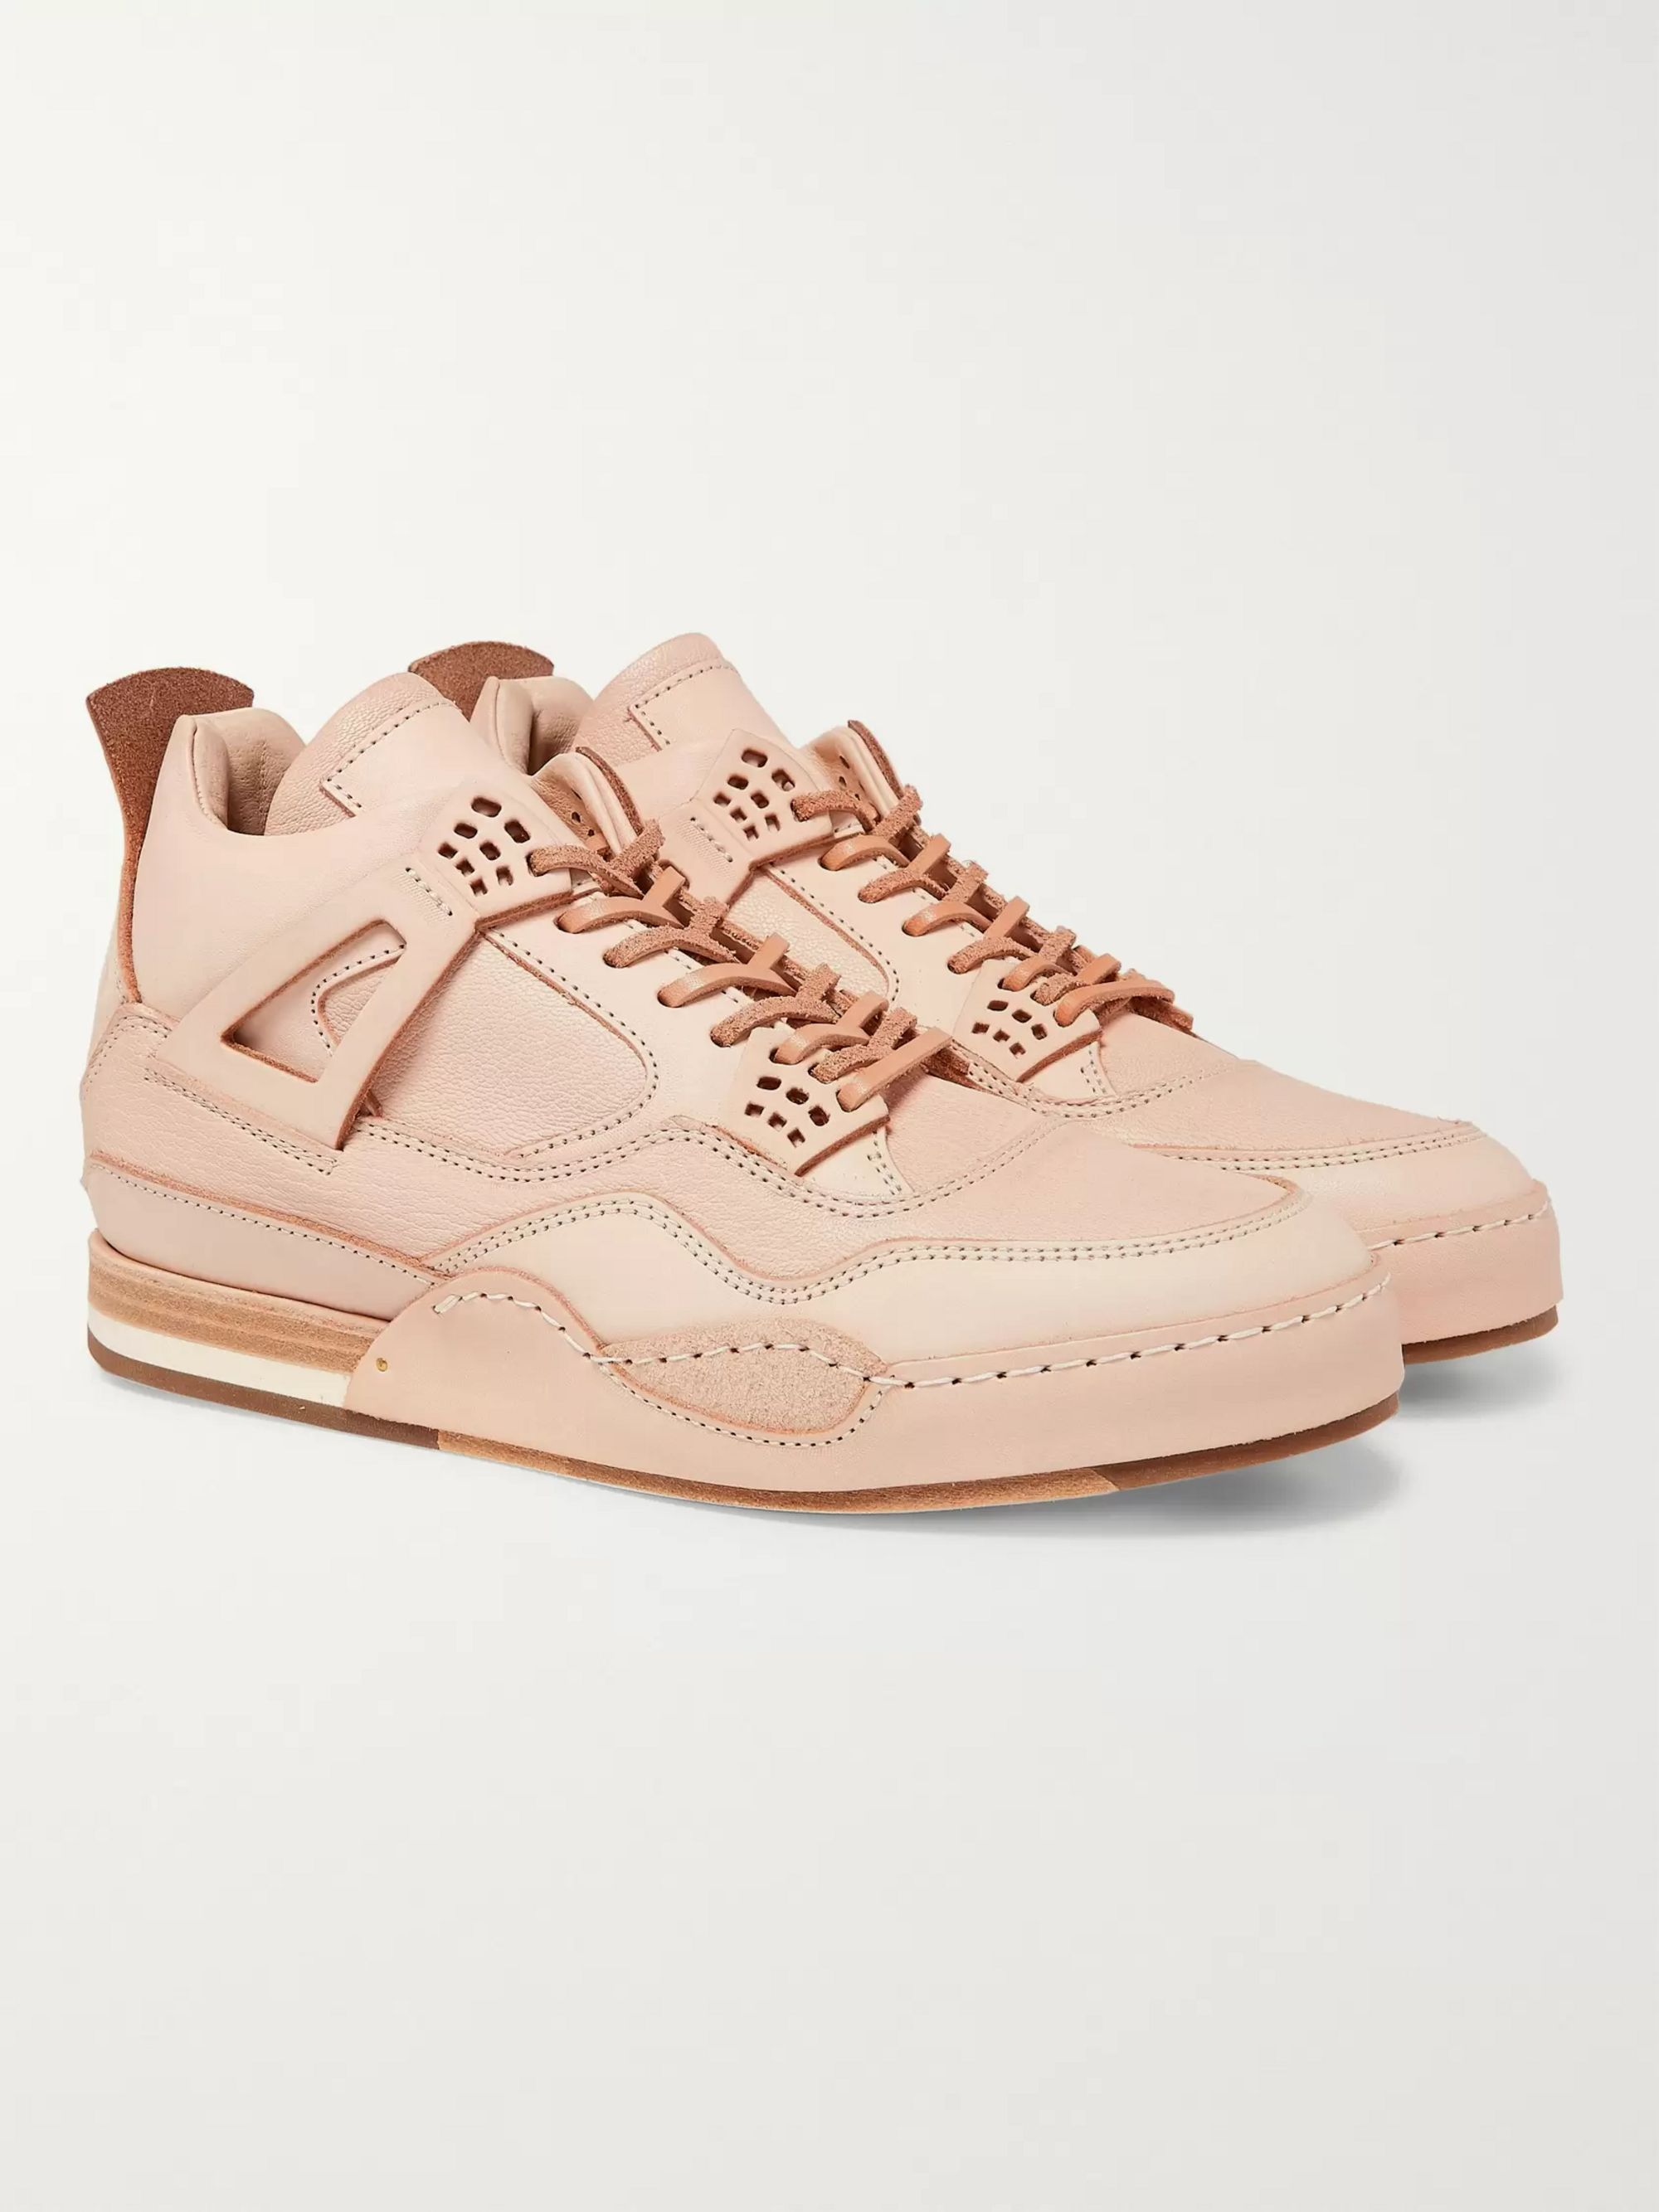 Hender Scheme MIP-10 Nubuck-Trimmed Leather Sneakers